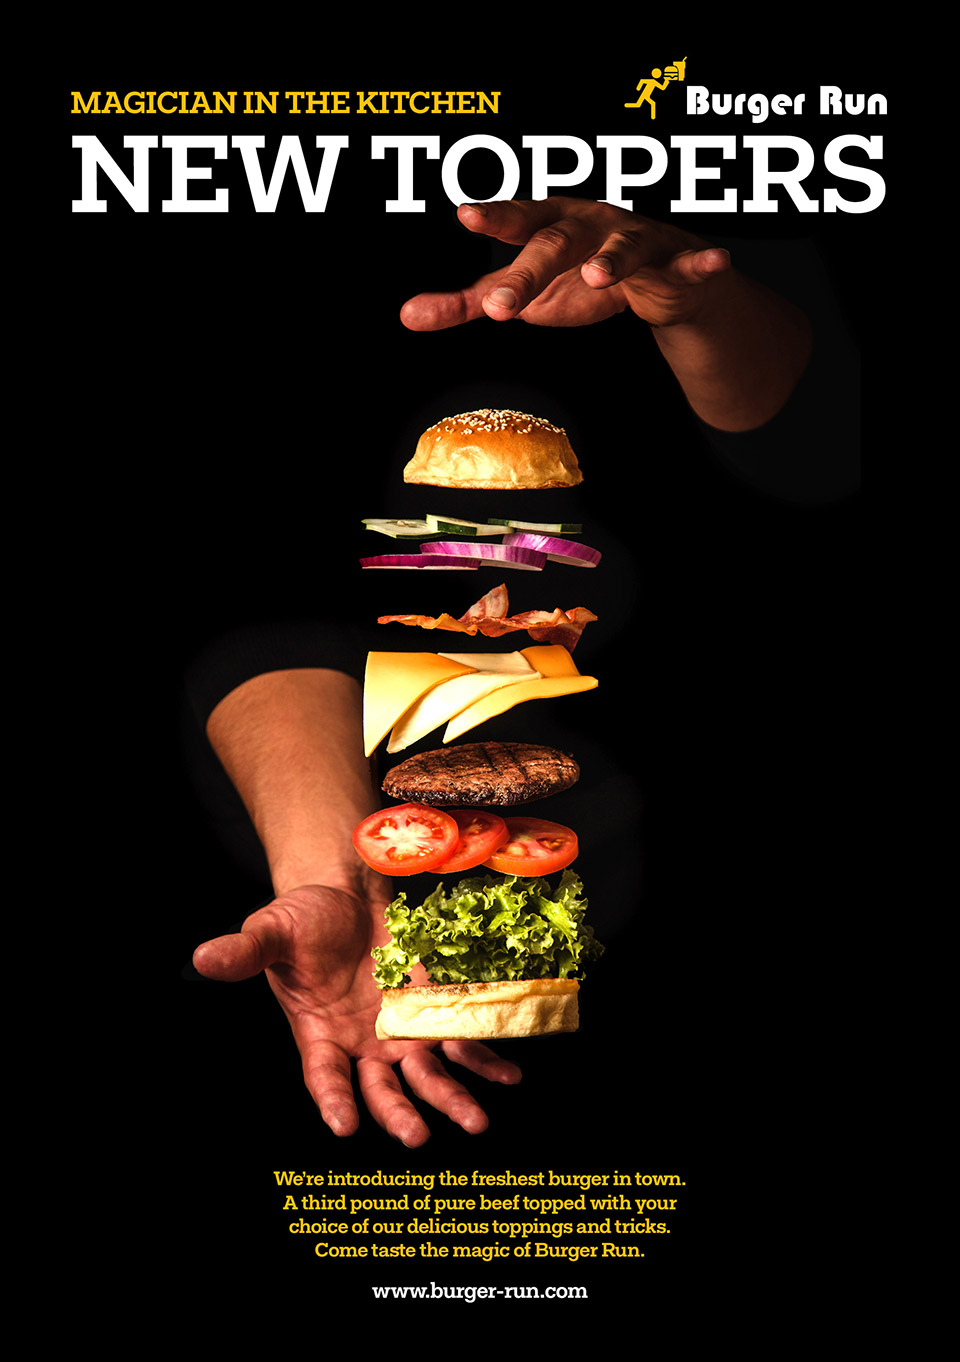 Asking the right copy testing questions can help gather preliminary feedback on advertising concepts like this hamburger advertisement for a restaurant.